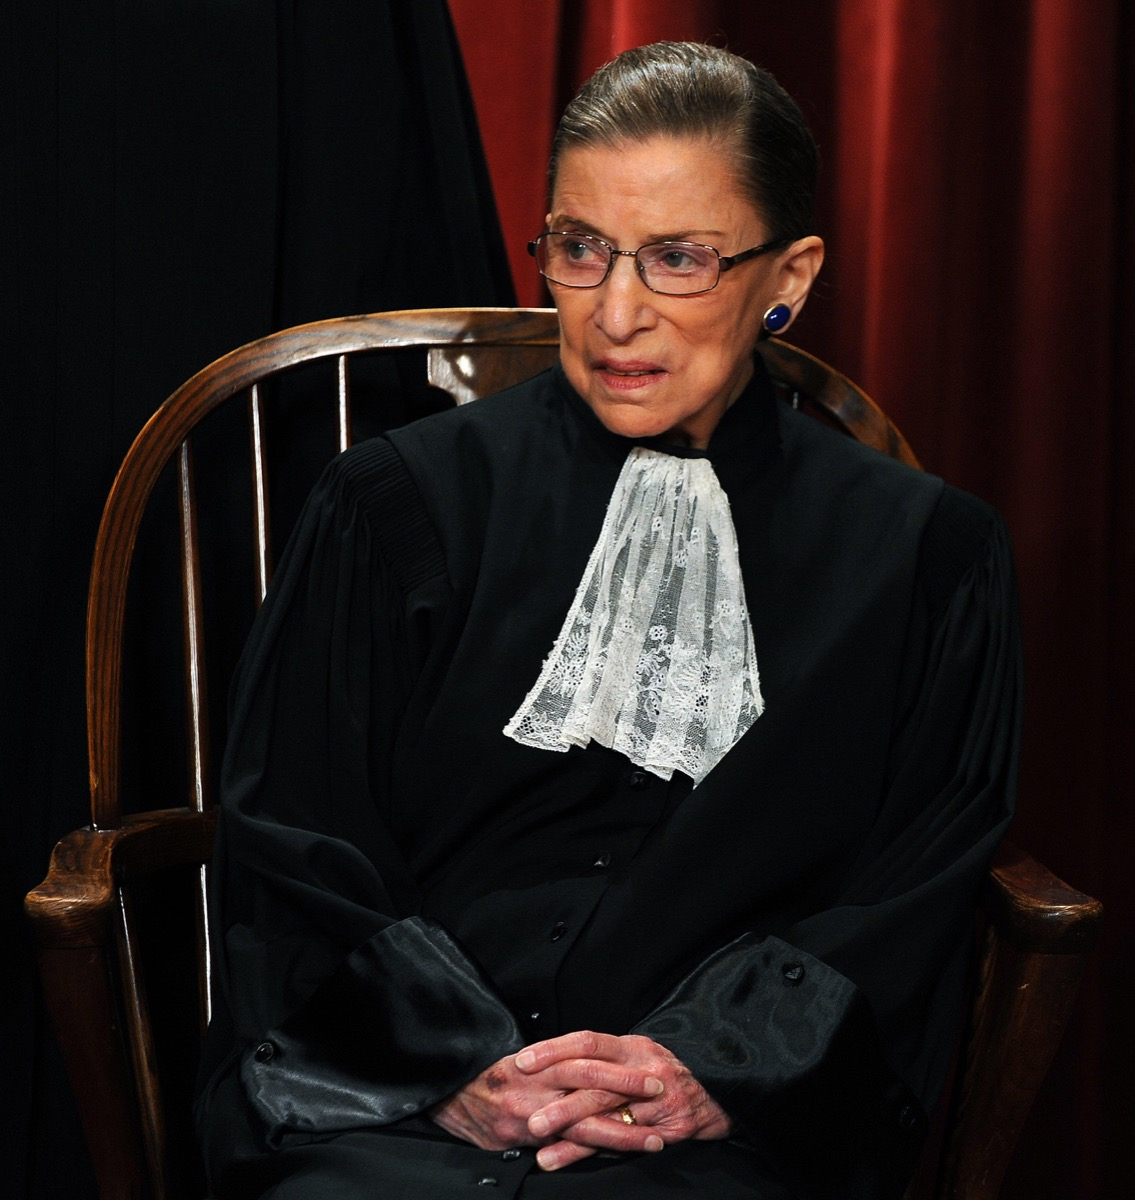 Ruth Bader Ginsburg, Associate Justice Ruth Bader Ginsburg and the Supreme Court Justices of the United States